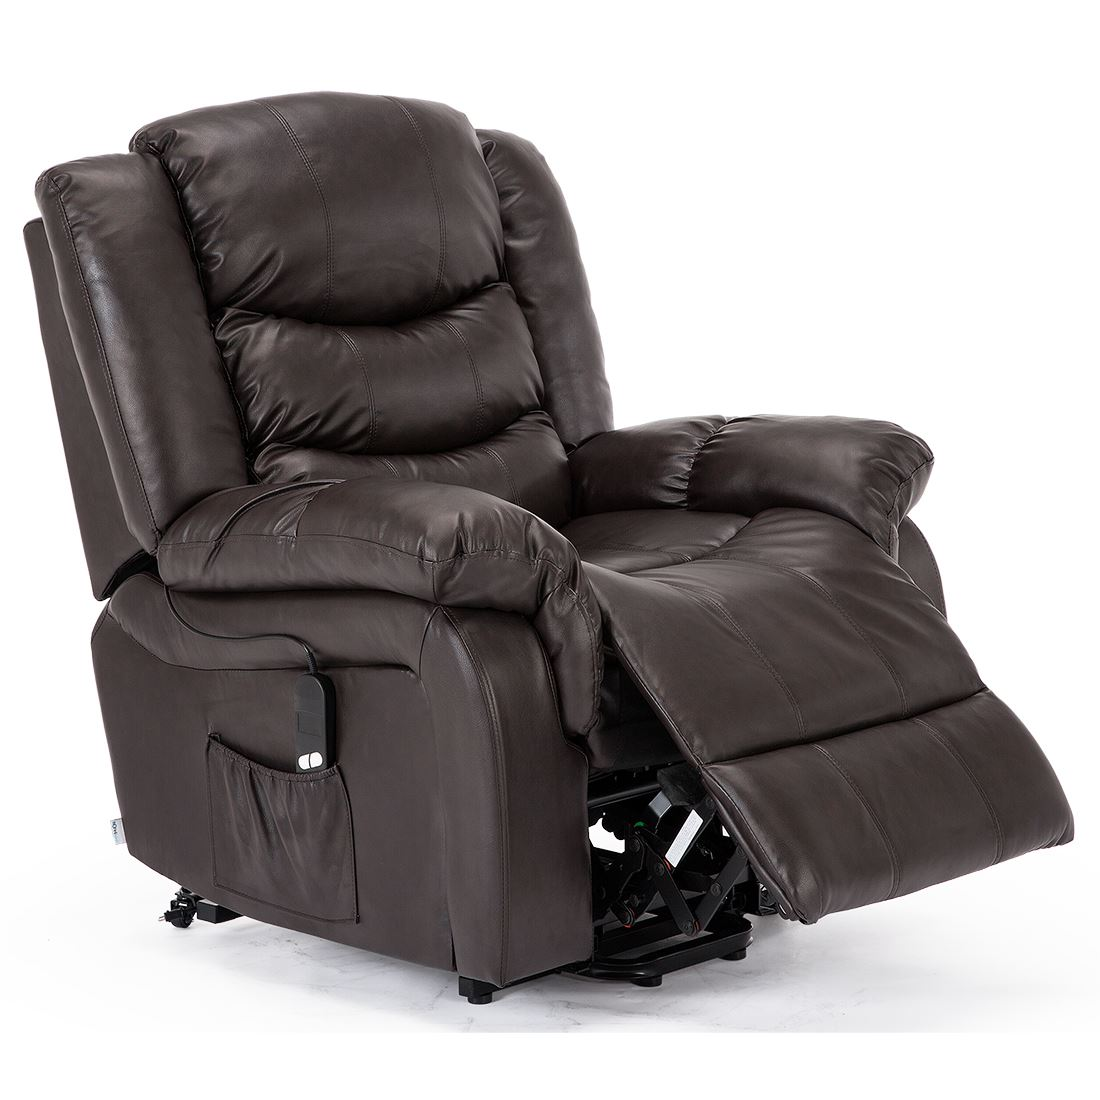 electric recliner sofa not working long table plans seattle rise real leather armchair